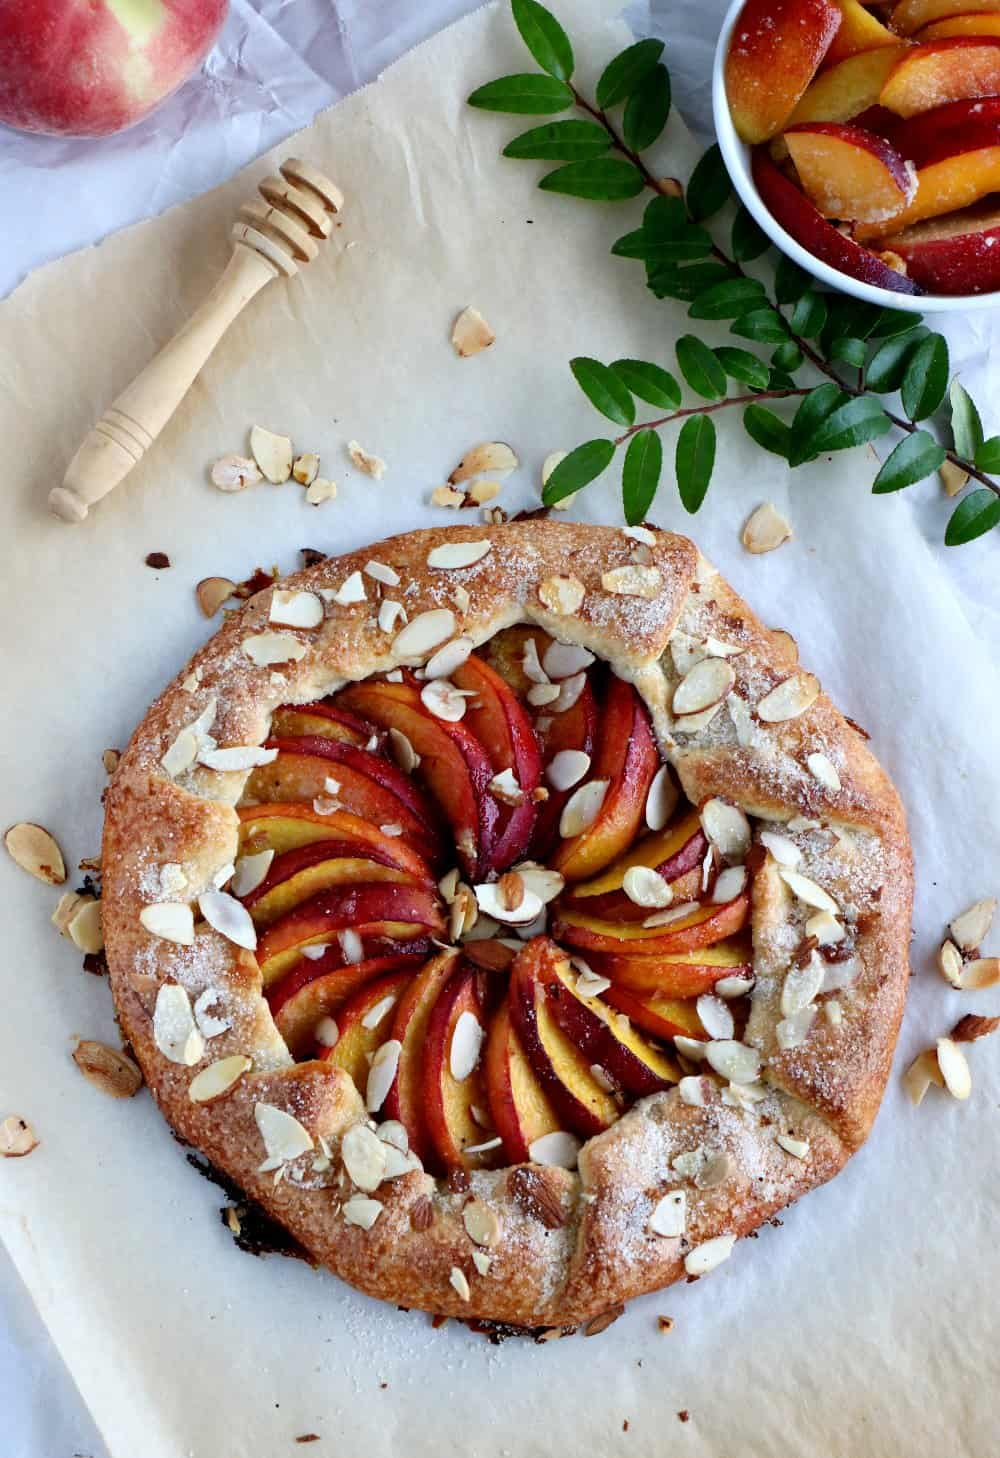 Honey Peach Galette with Buttermilk Crust